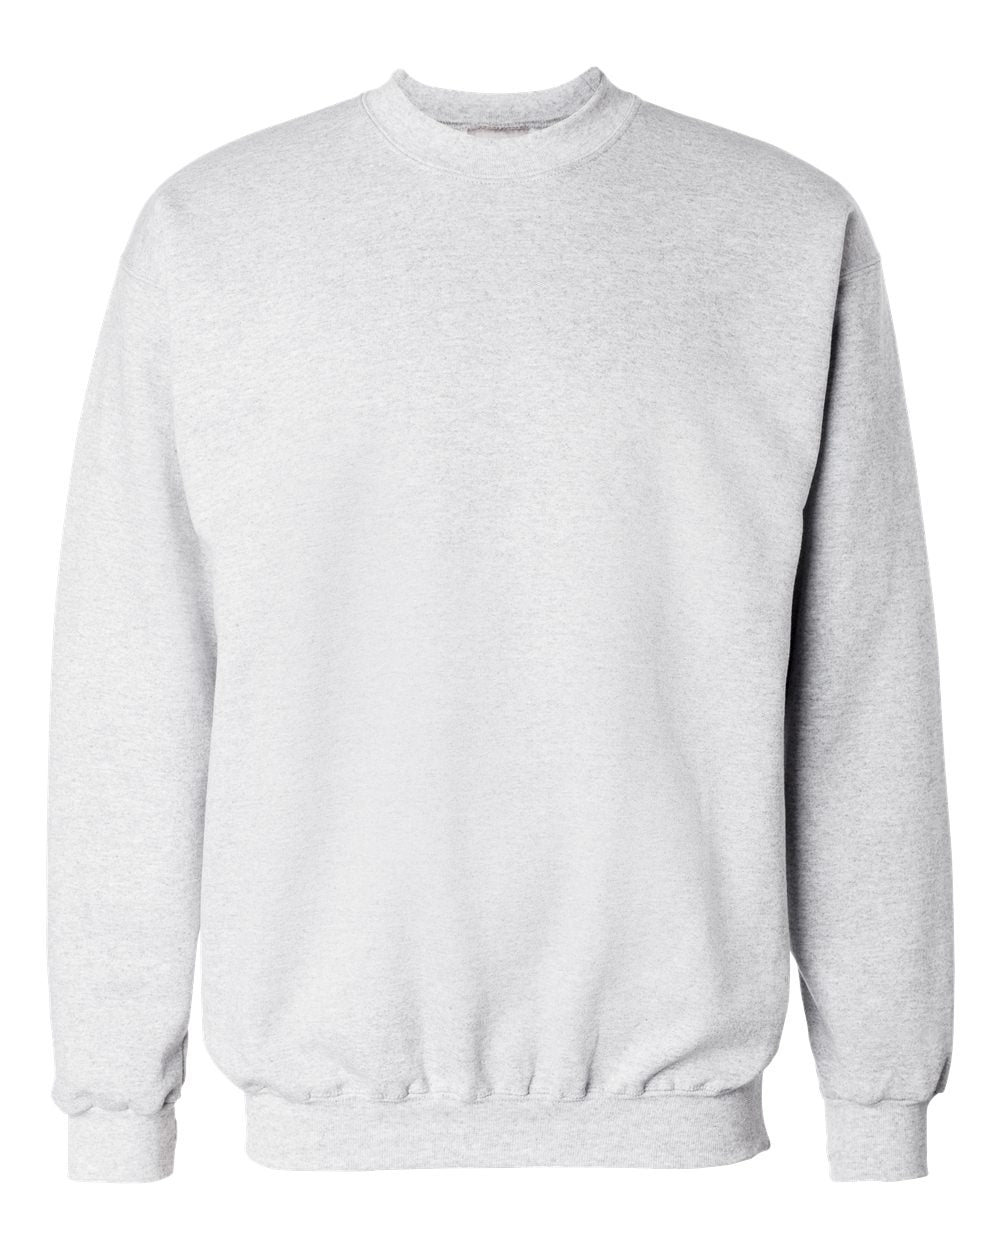 Hanes - Ultimate Cotton Crewneck Sweatshirt - F260